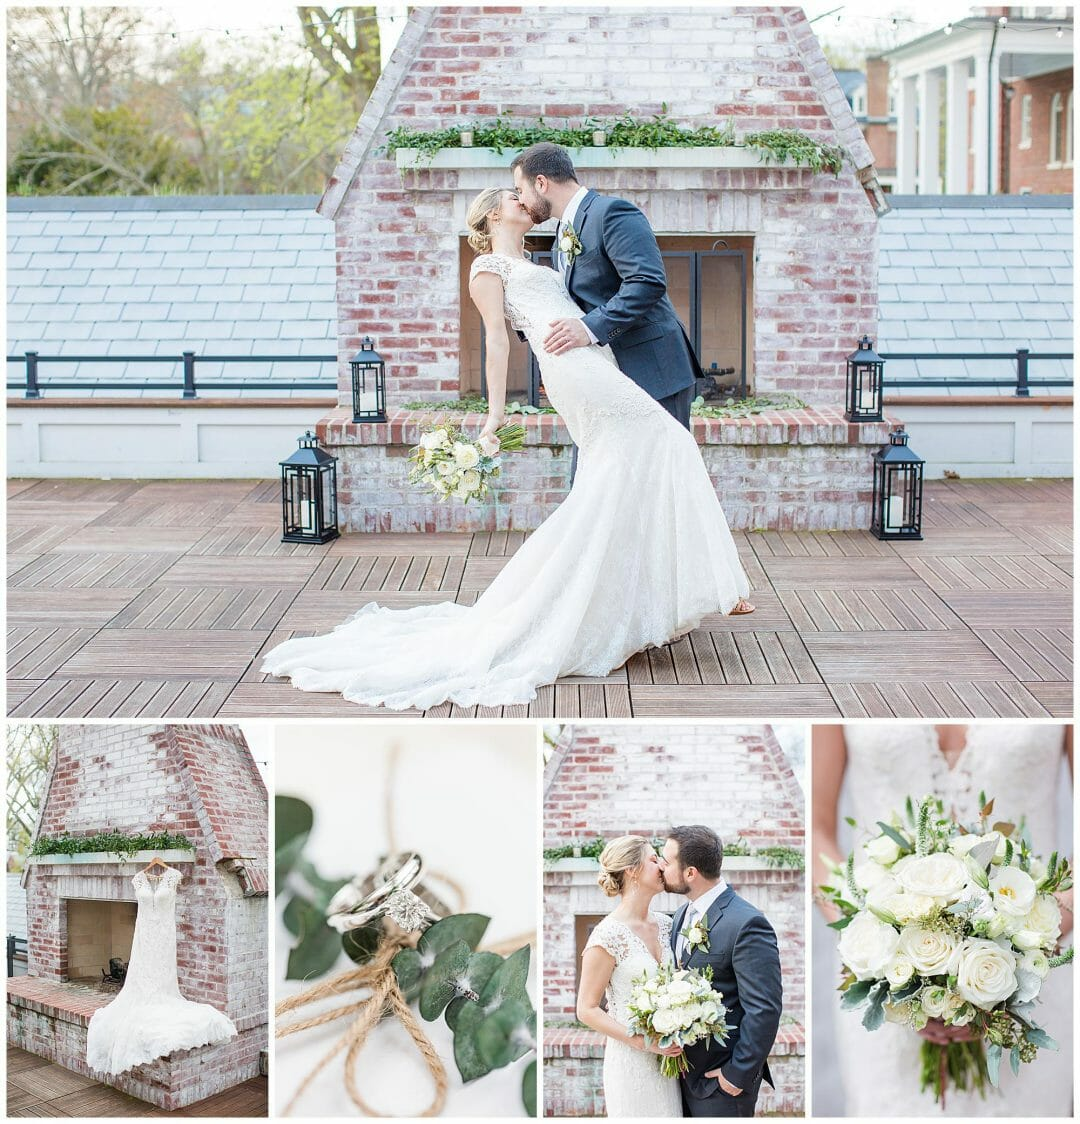 Inn on Boltwood Wedding in Amherst Massachusetts